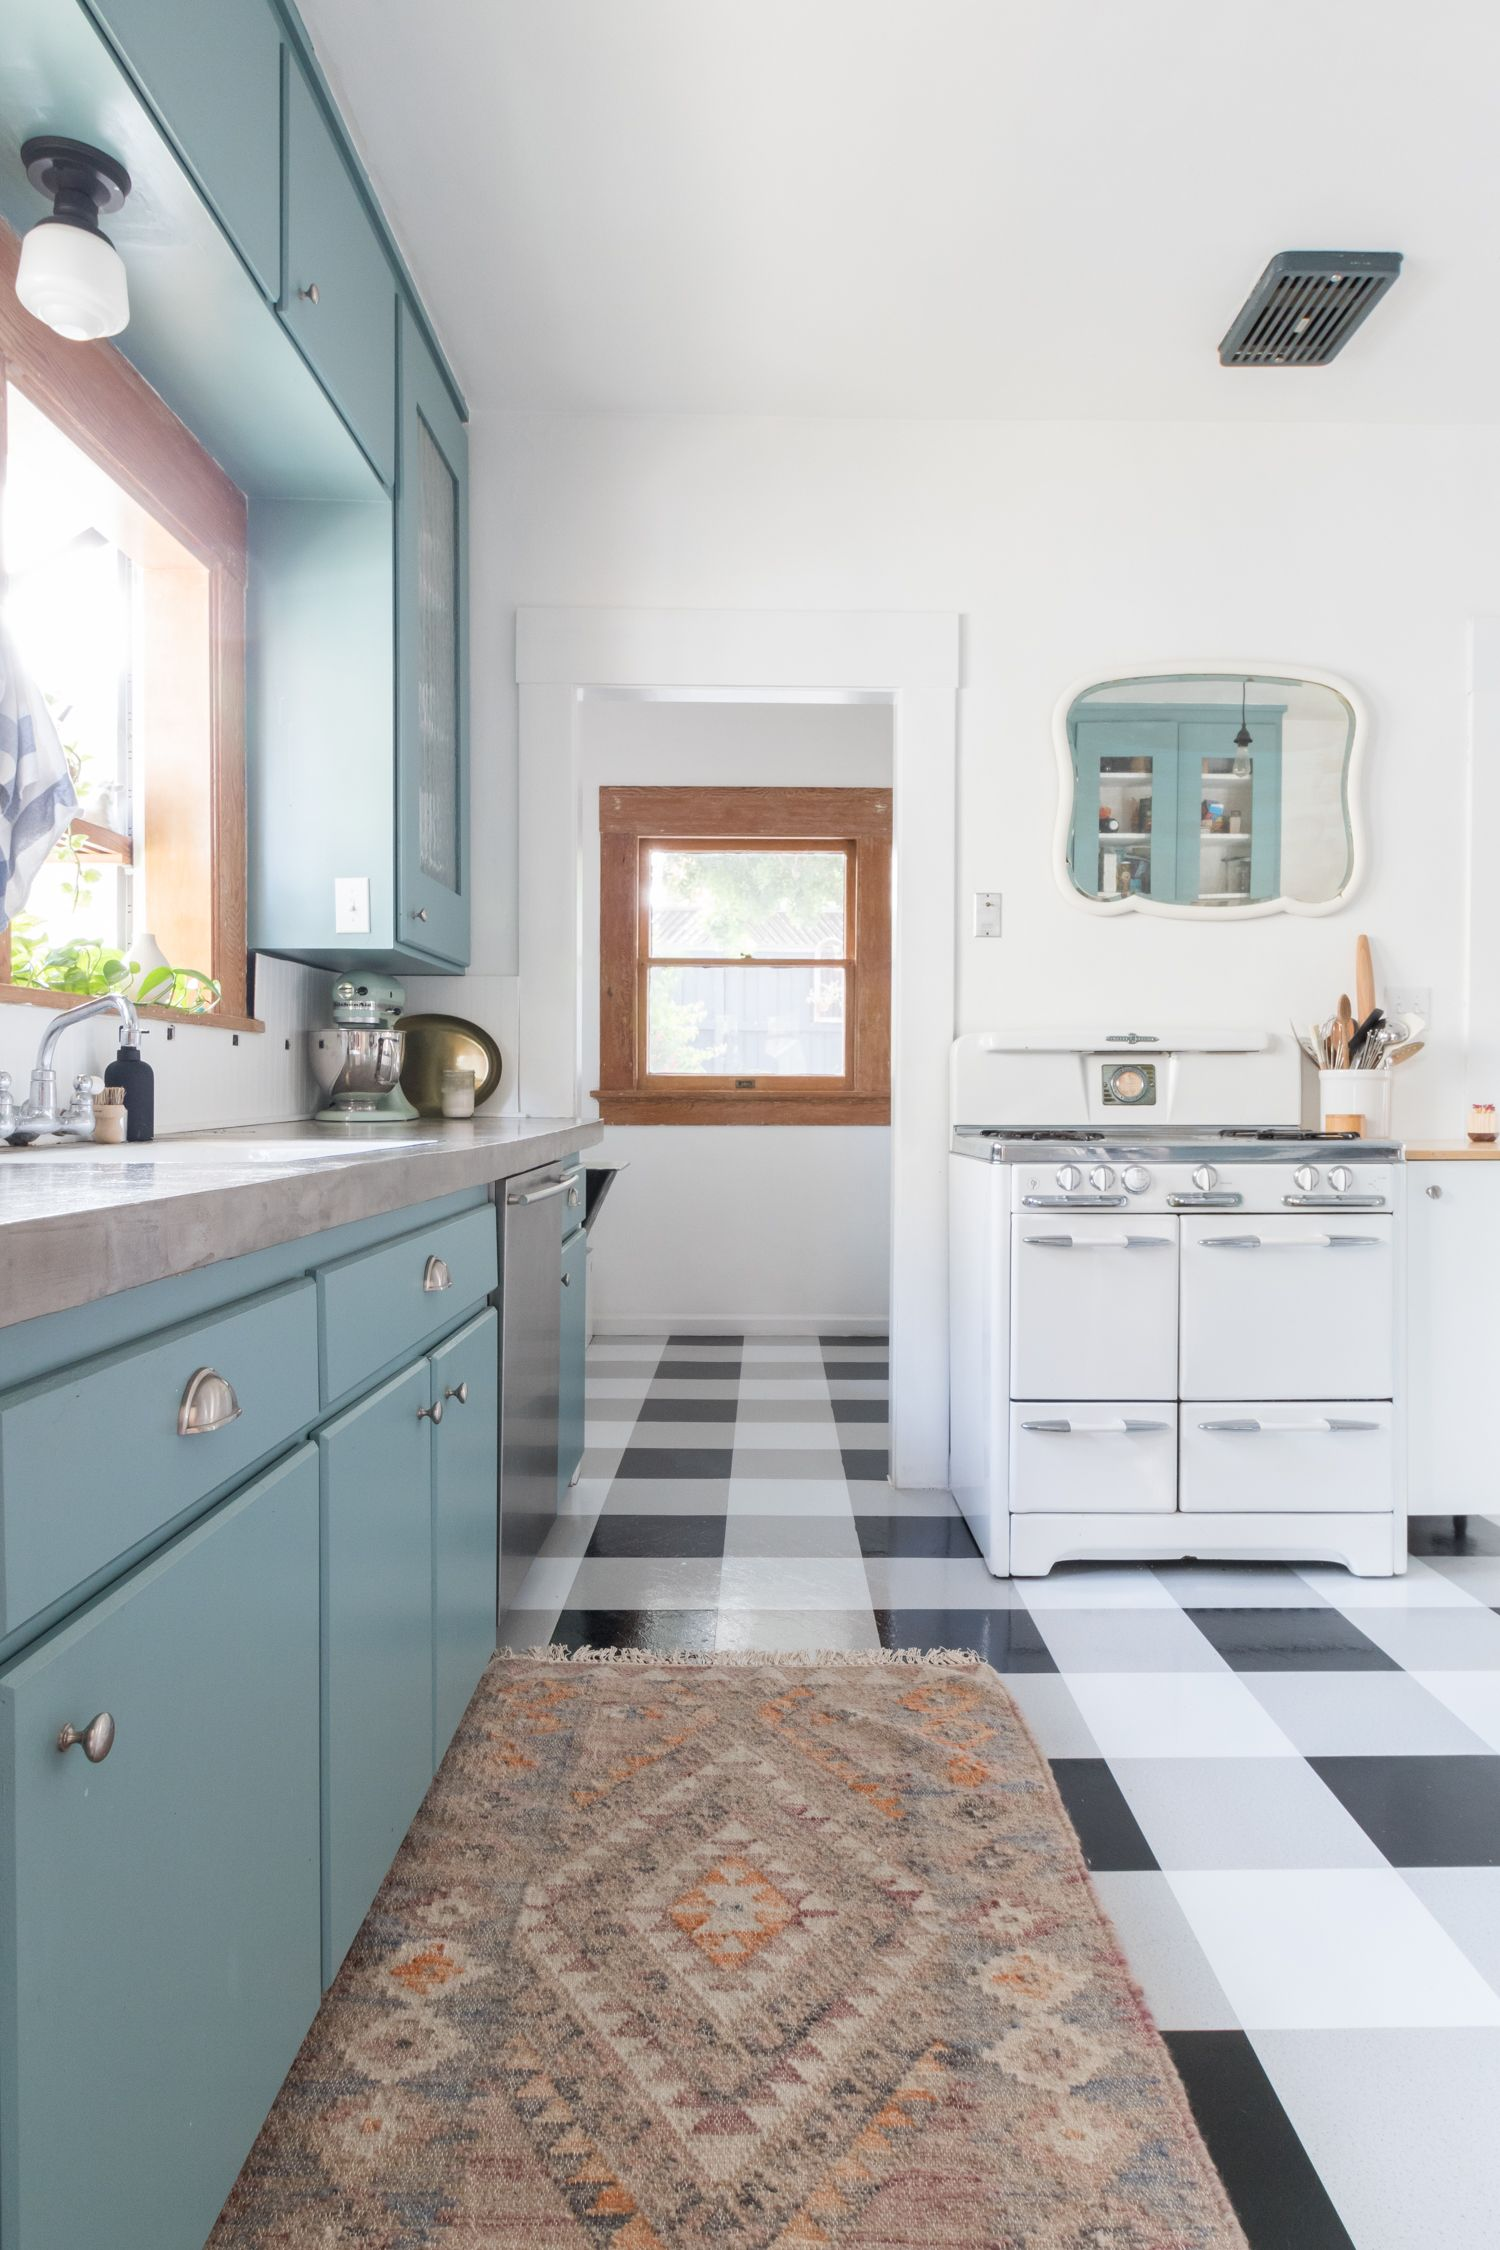 Old School Remodeling Materials That Feel Fresh Modern Again Kitchen Flooring Kitchen Remodel Small Apartment Design